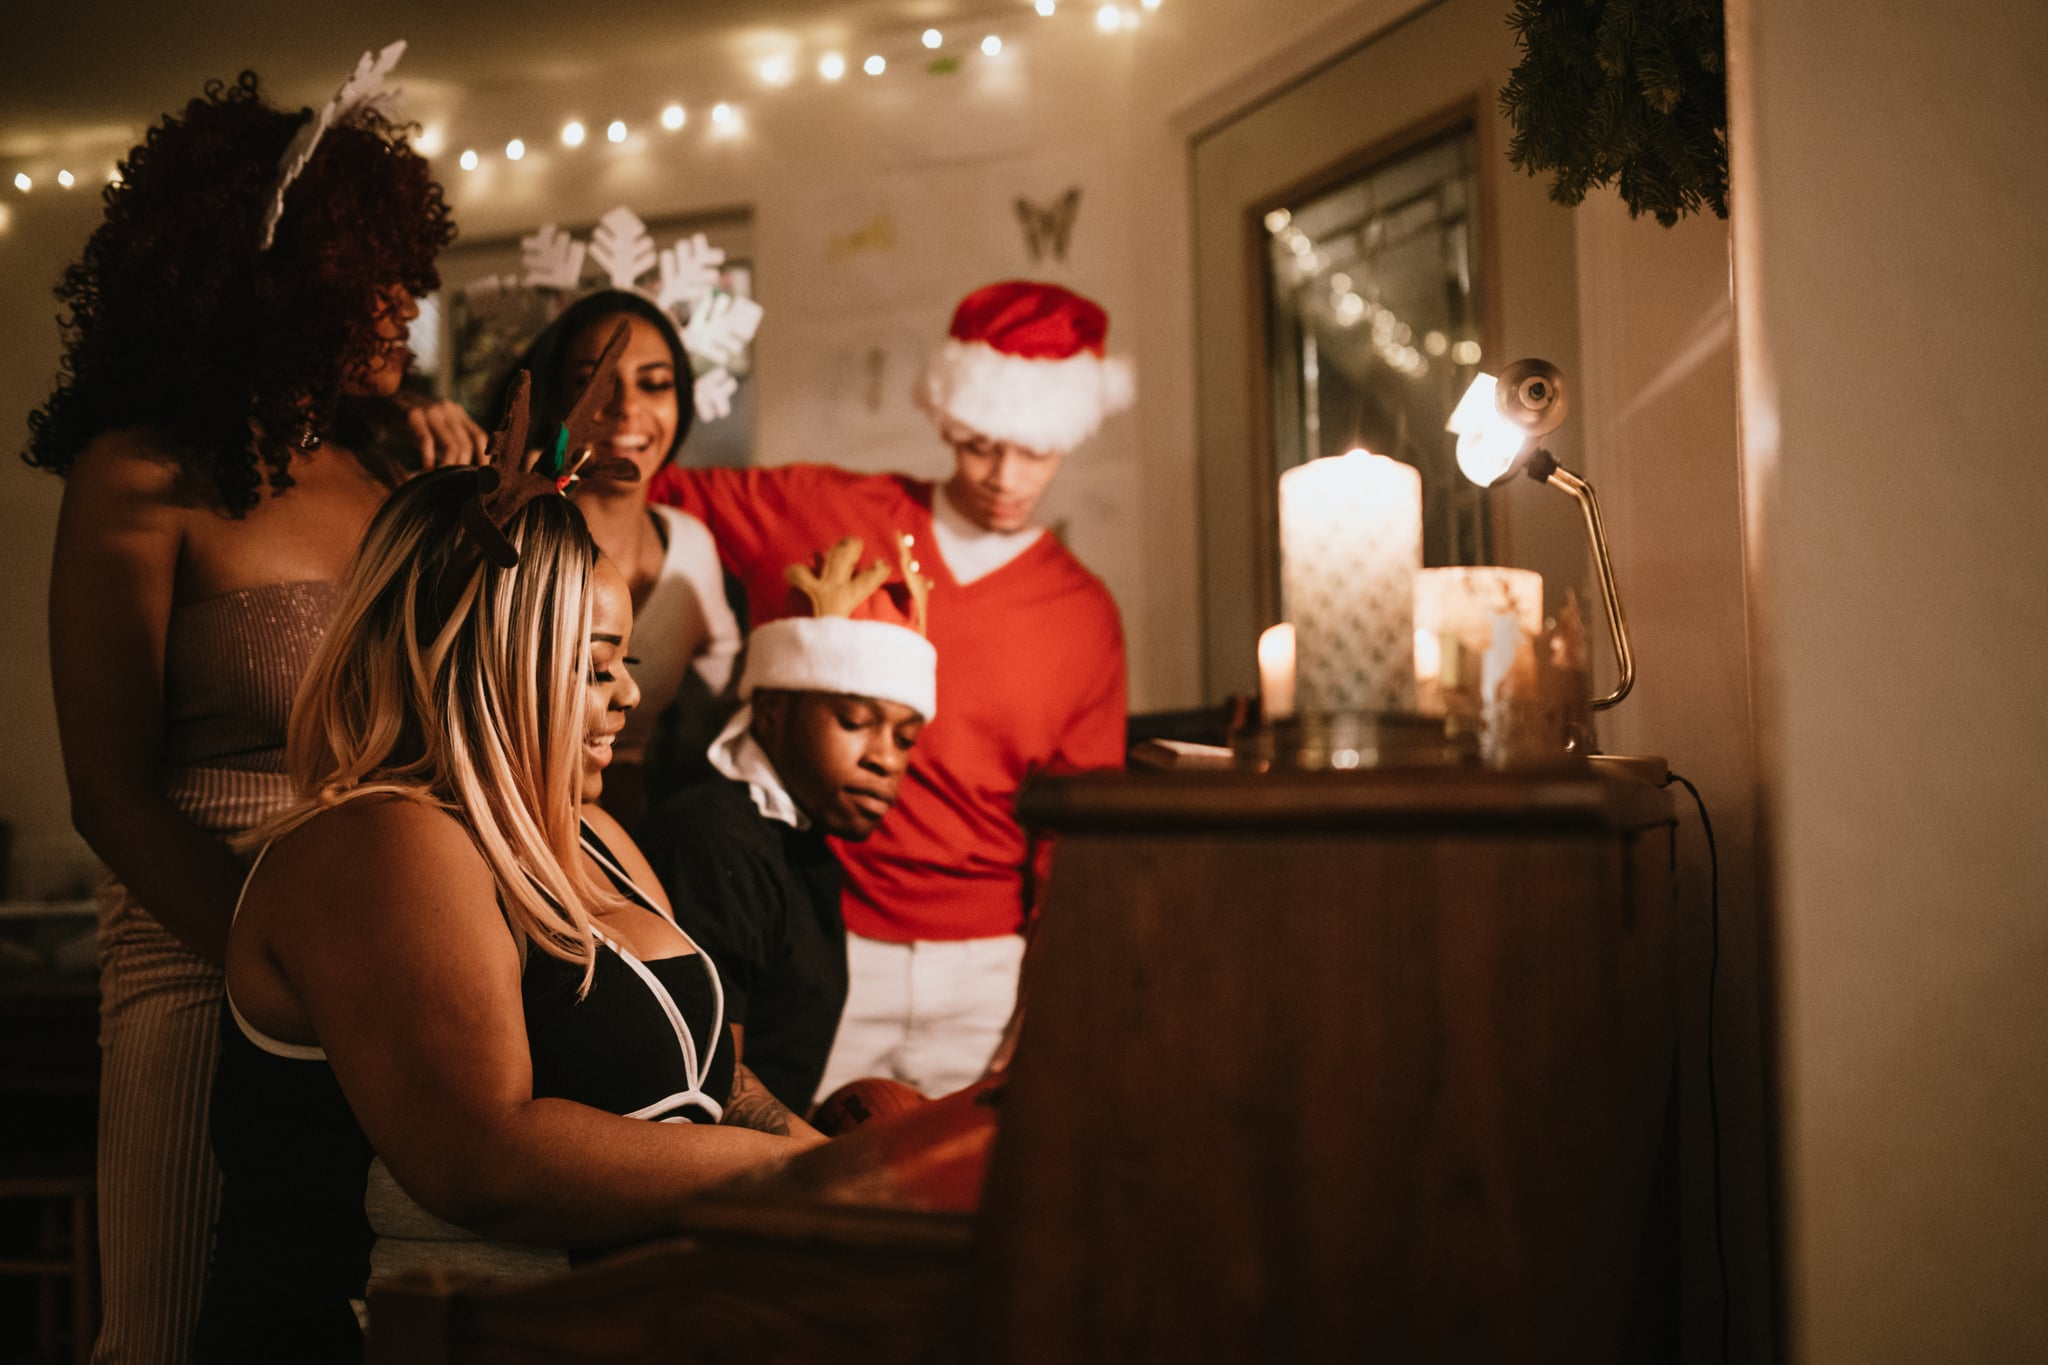 A group of young adult friends gather at a home for Christmas celebration over the holiday, dressed to fit the occasion with various Christmas accessories.  They sing songs together at the piano, enjoying the Christmas cheer.